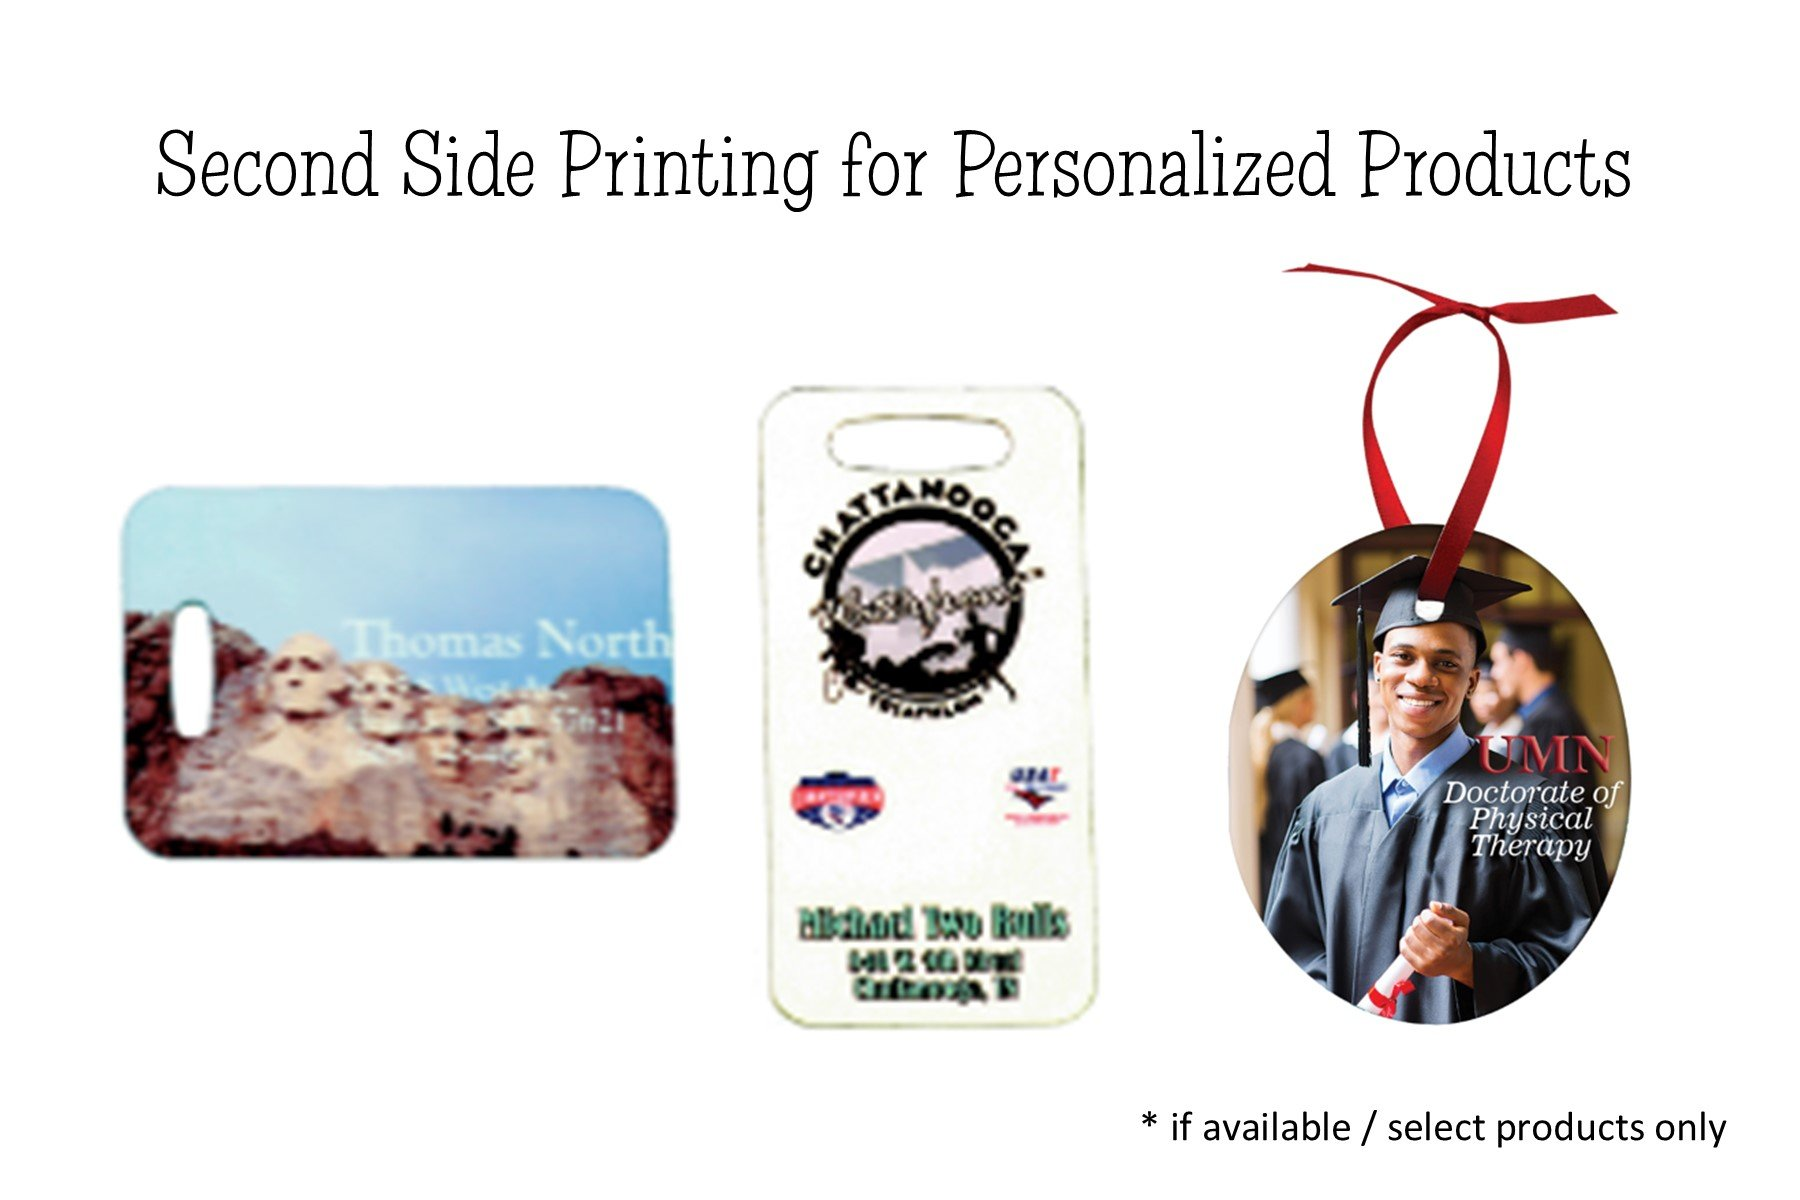 Personalized Product Second Side for Select Products